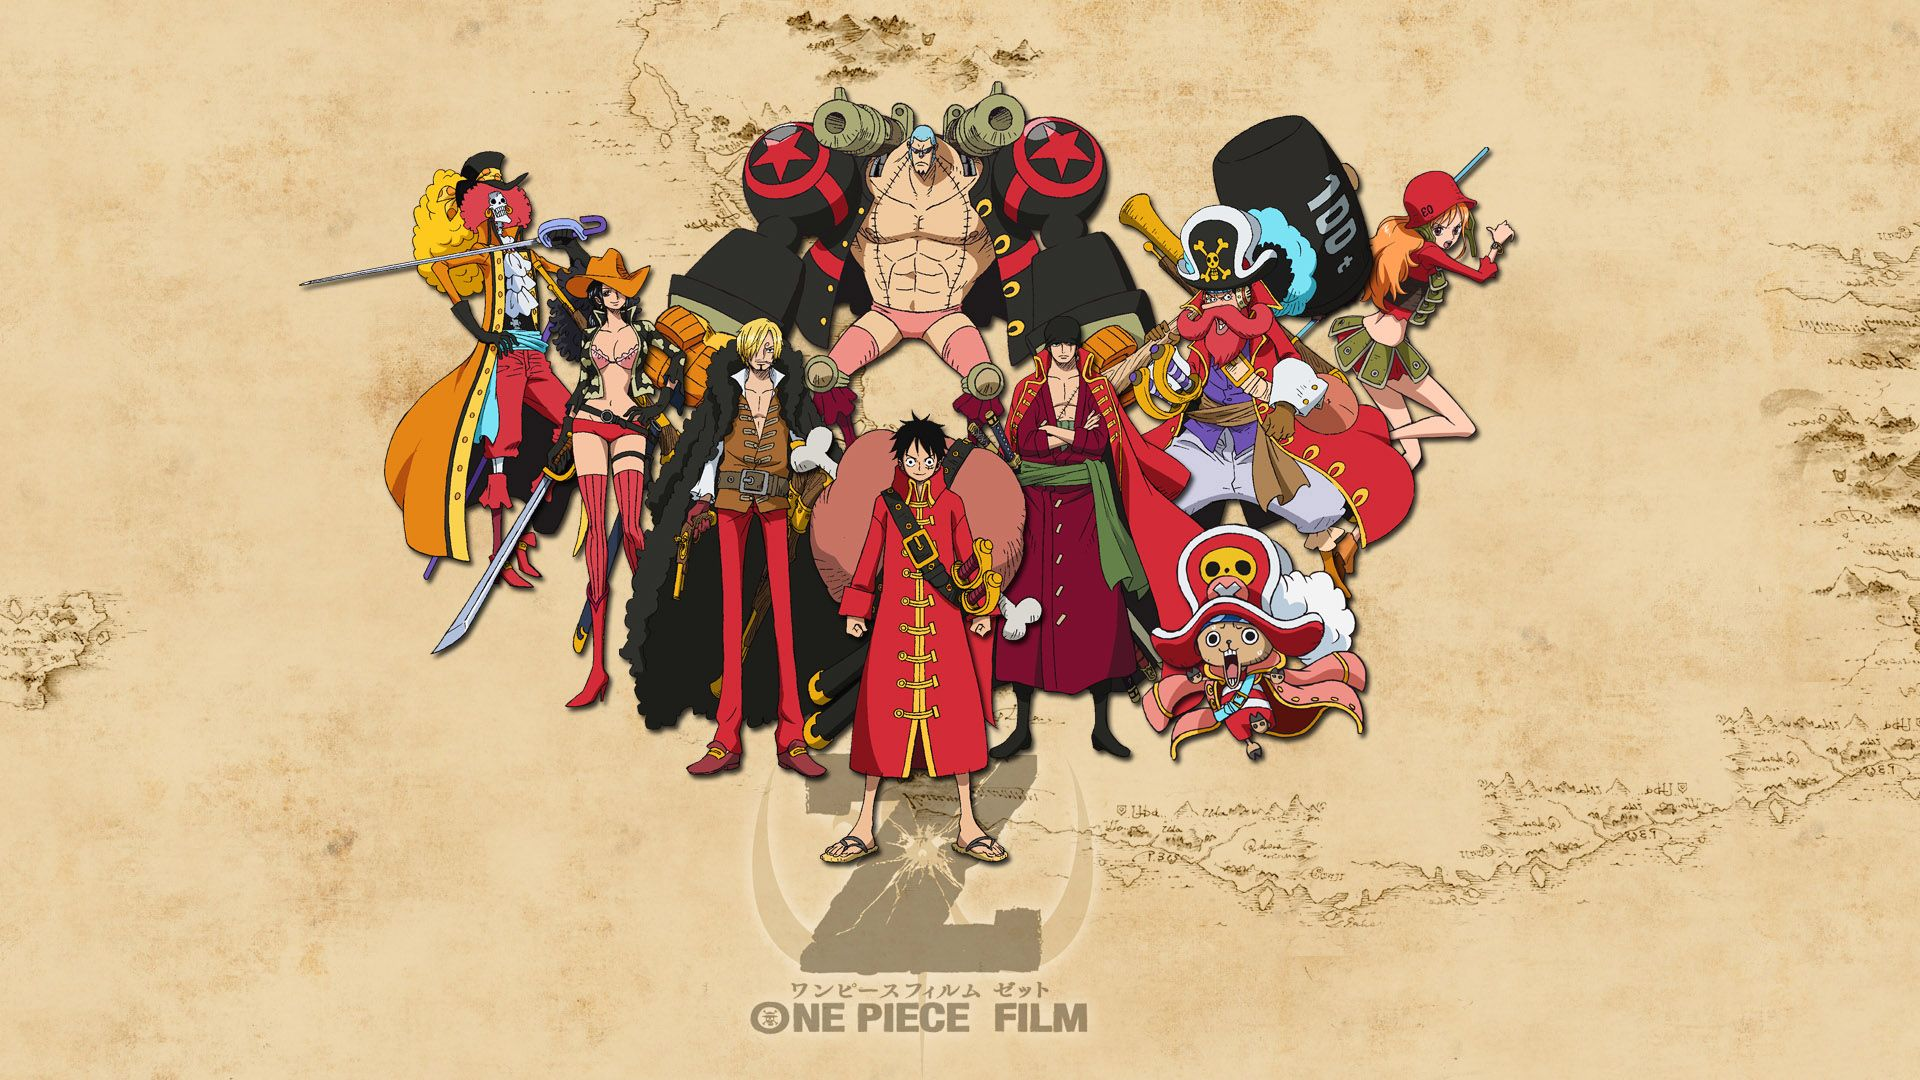 Hd wallpaper one piece - One Piece Hd Wallpapers Backgrounds Wallpaper